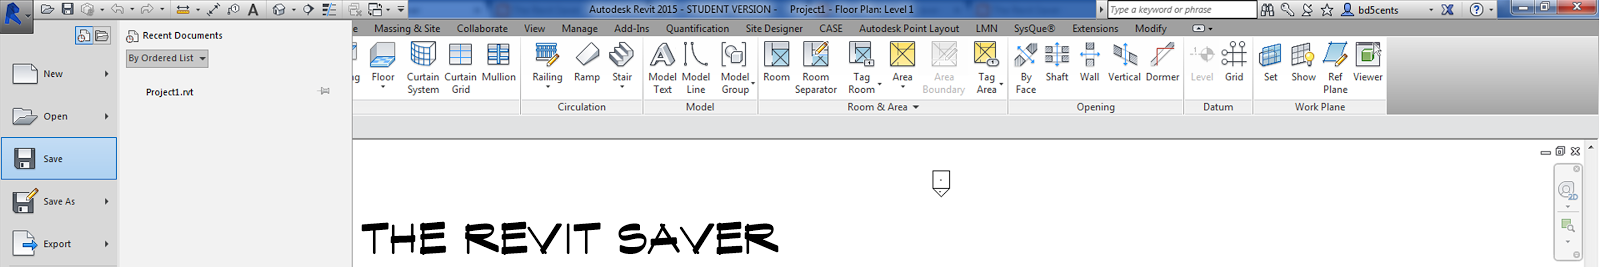 The Revit Saver